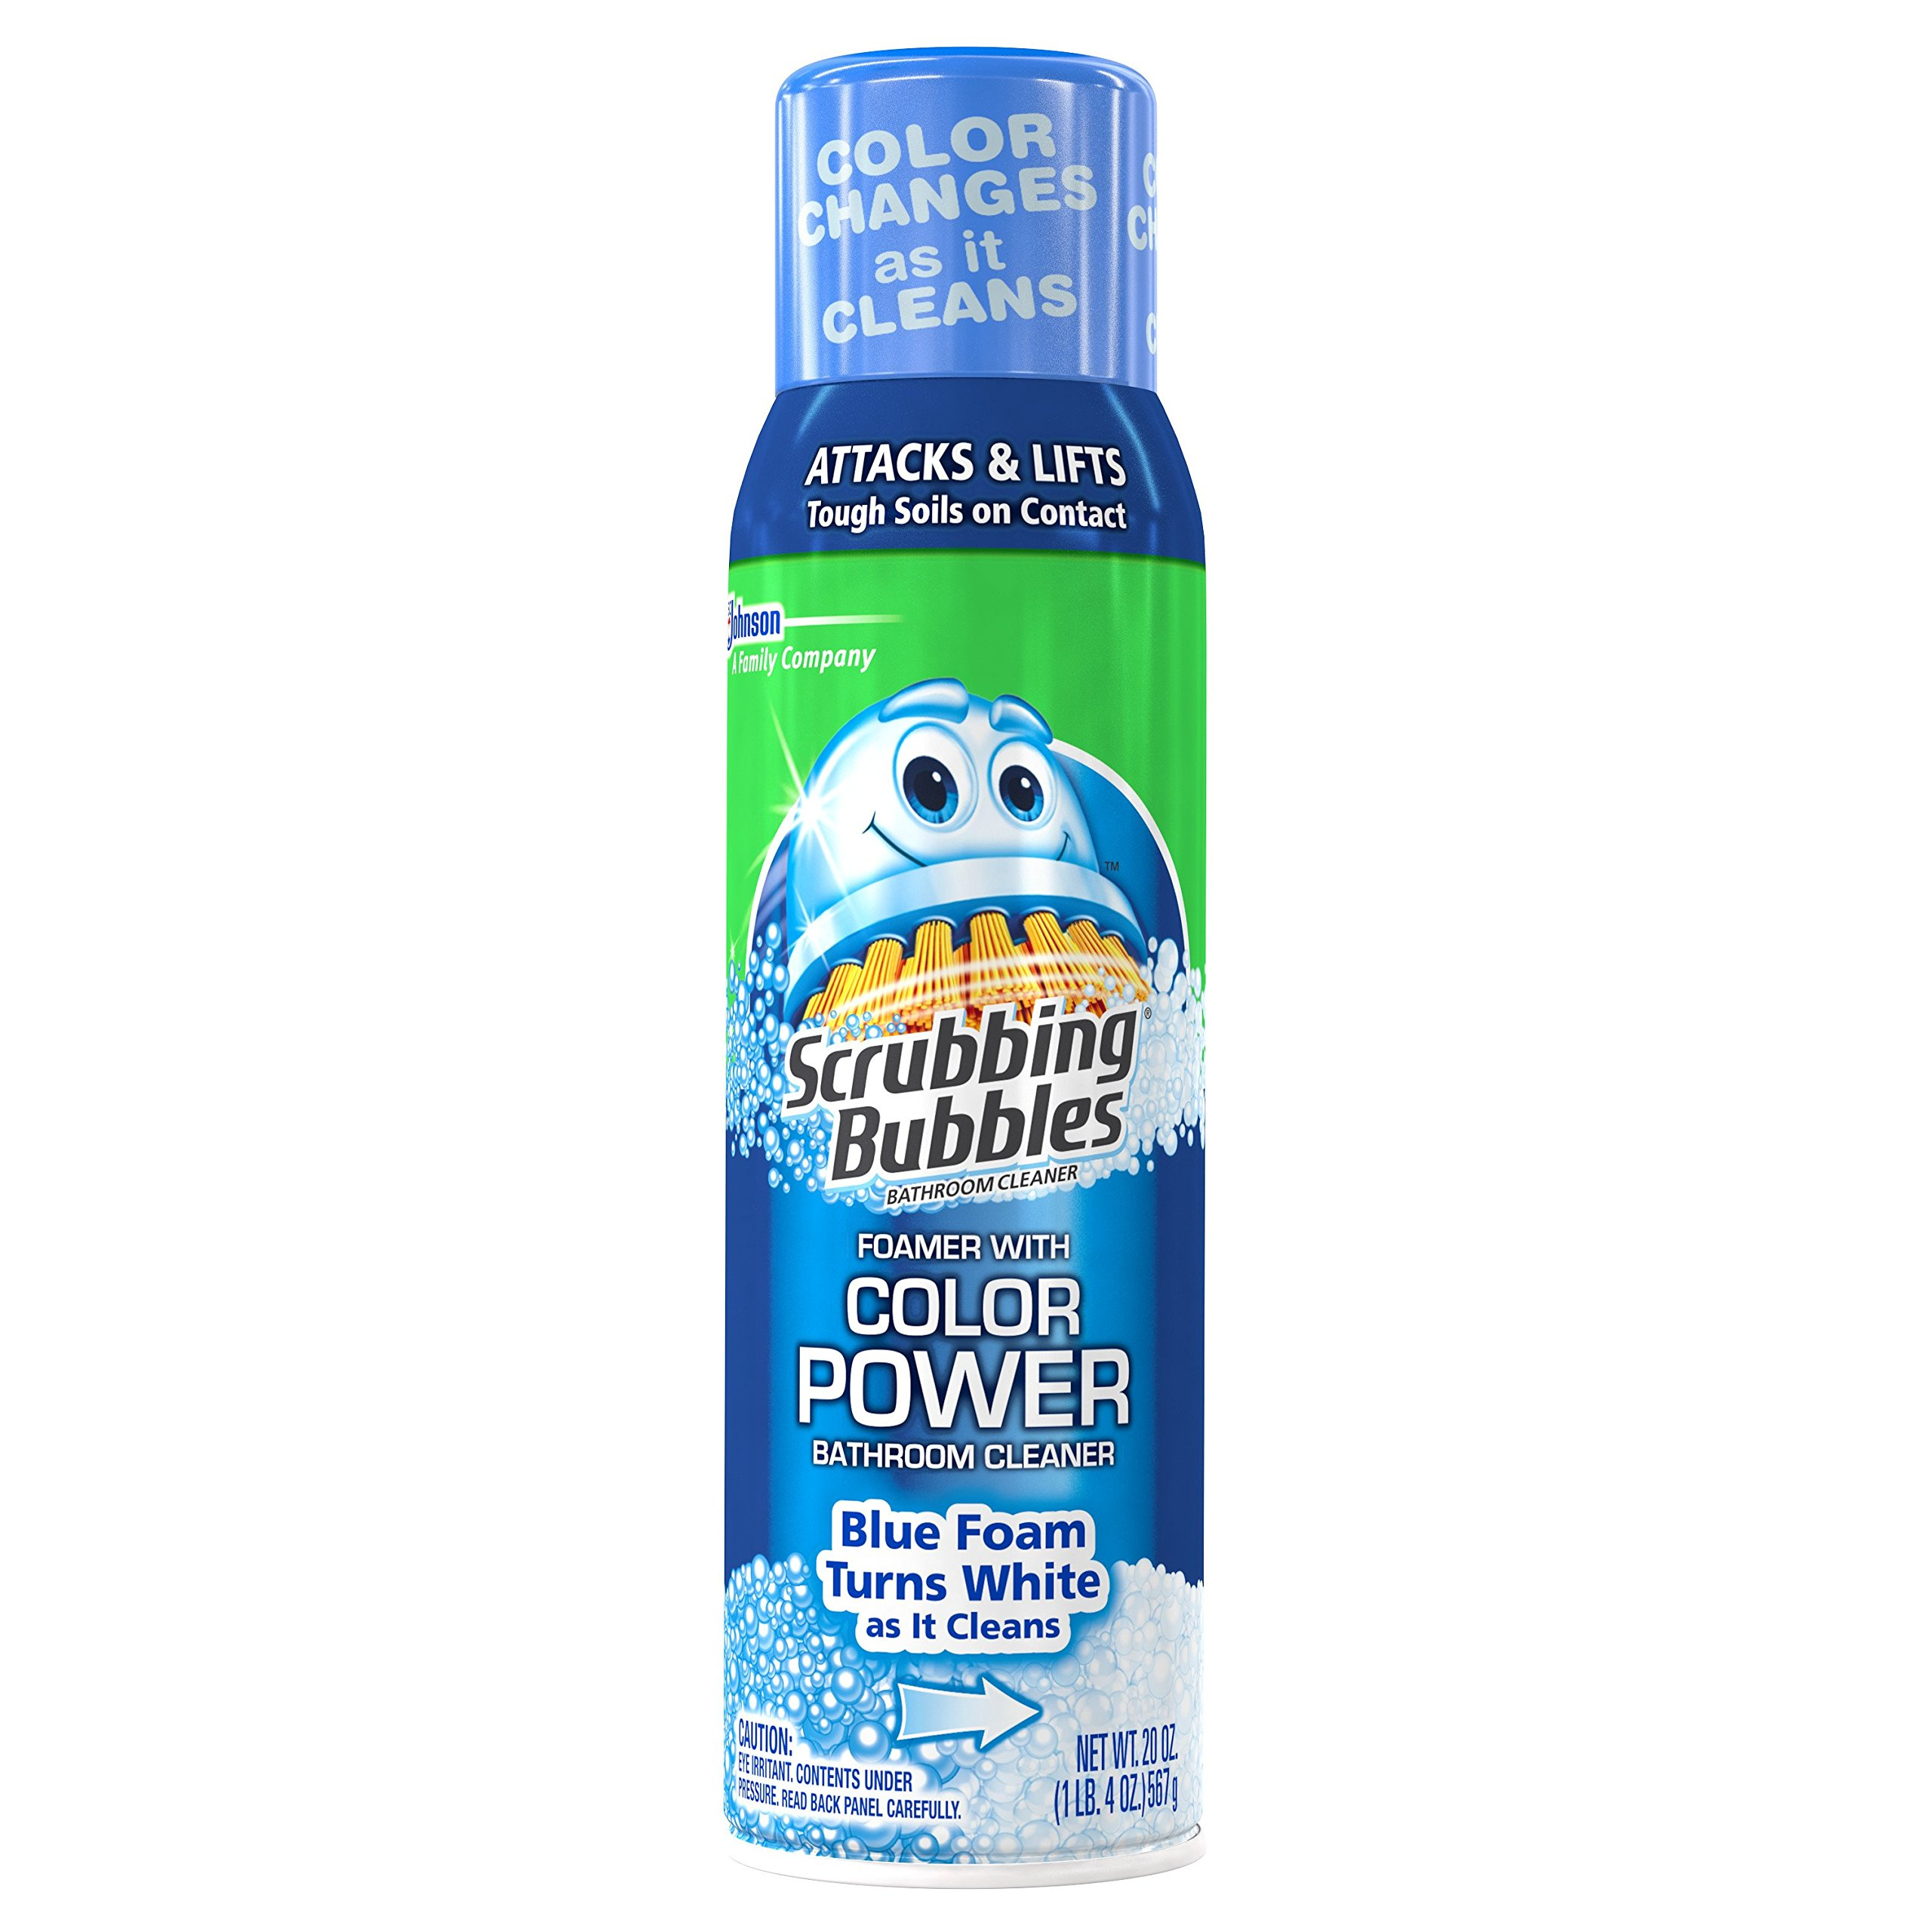 Scrubbing Bubbles Bathroom Cleaner Foamer with Color Power 20 oz (Pack of 2) by Scrubbing Bubbles (Image #1)